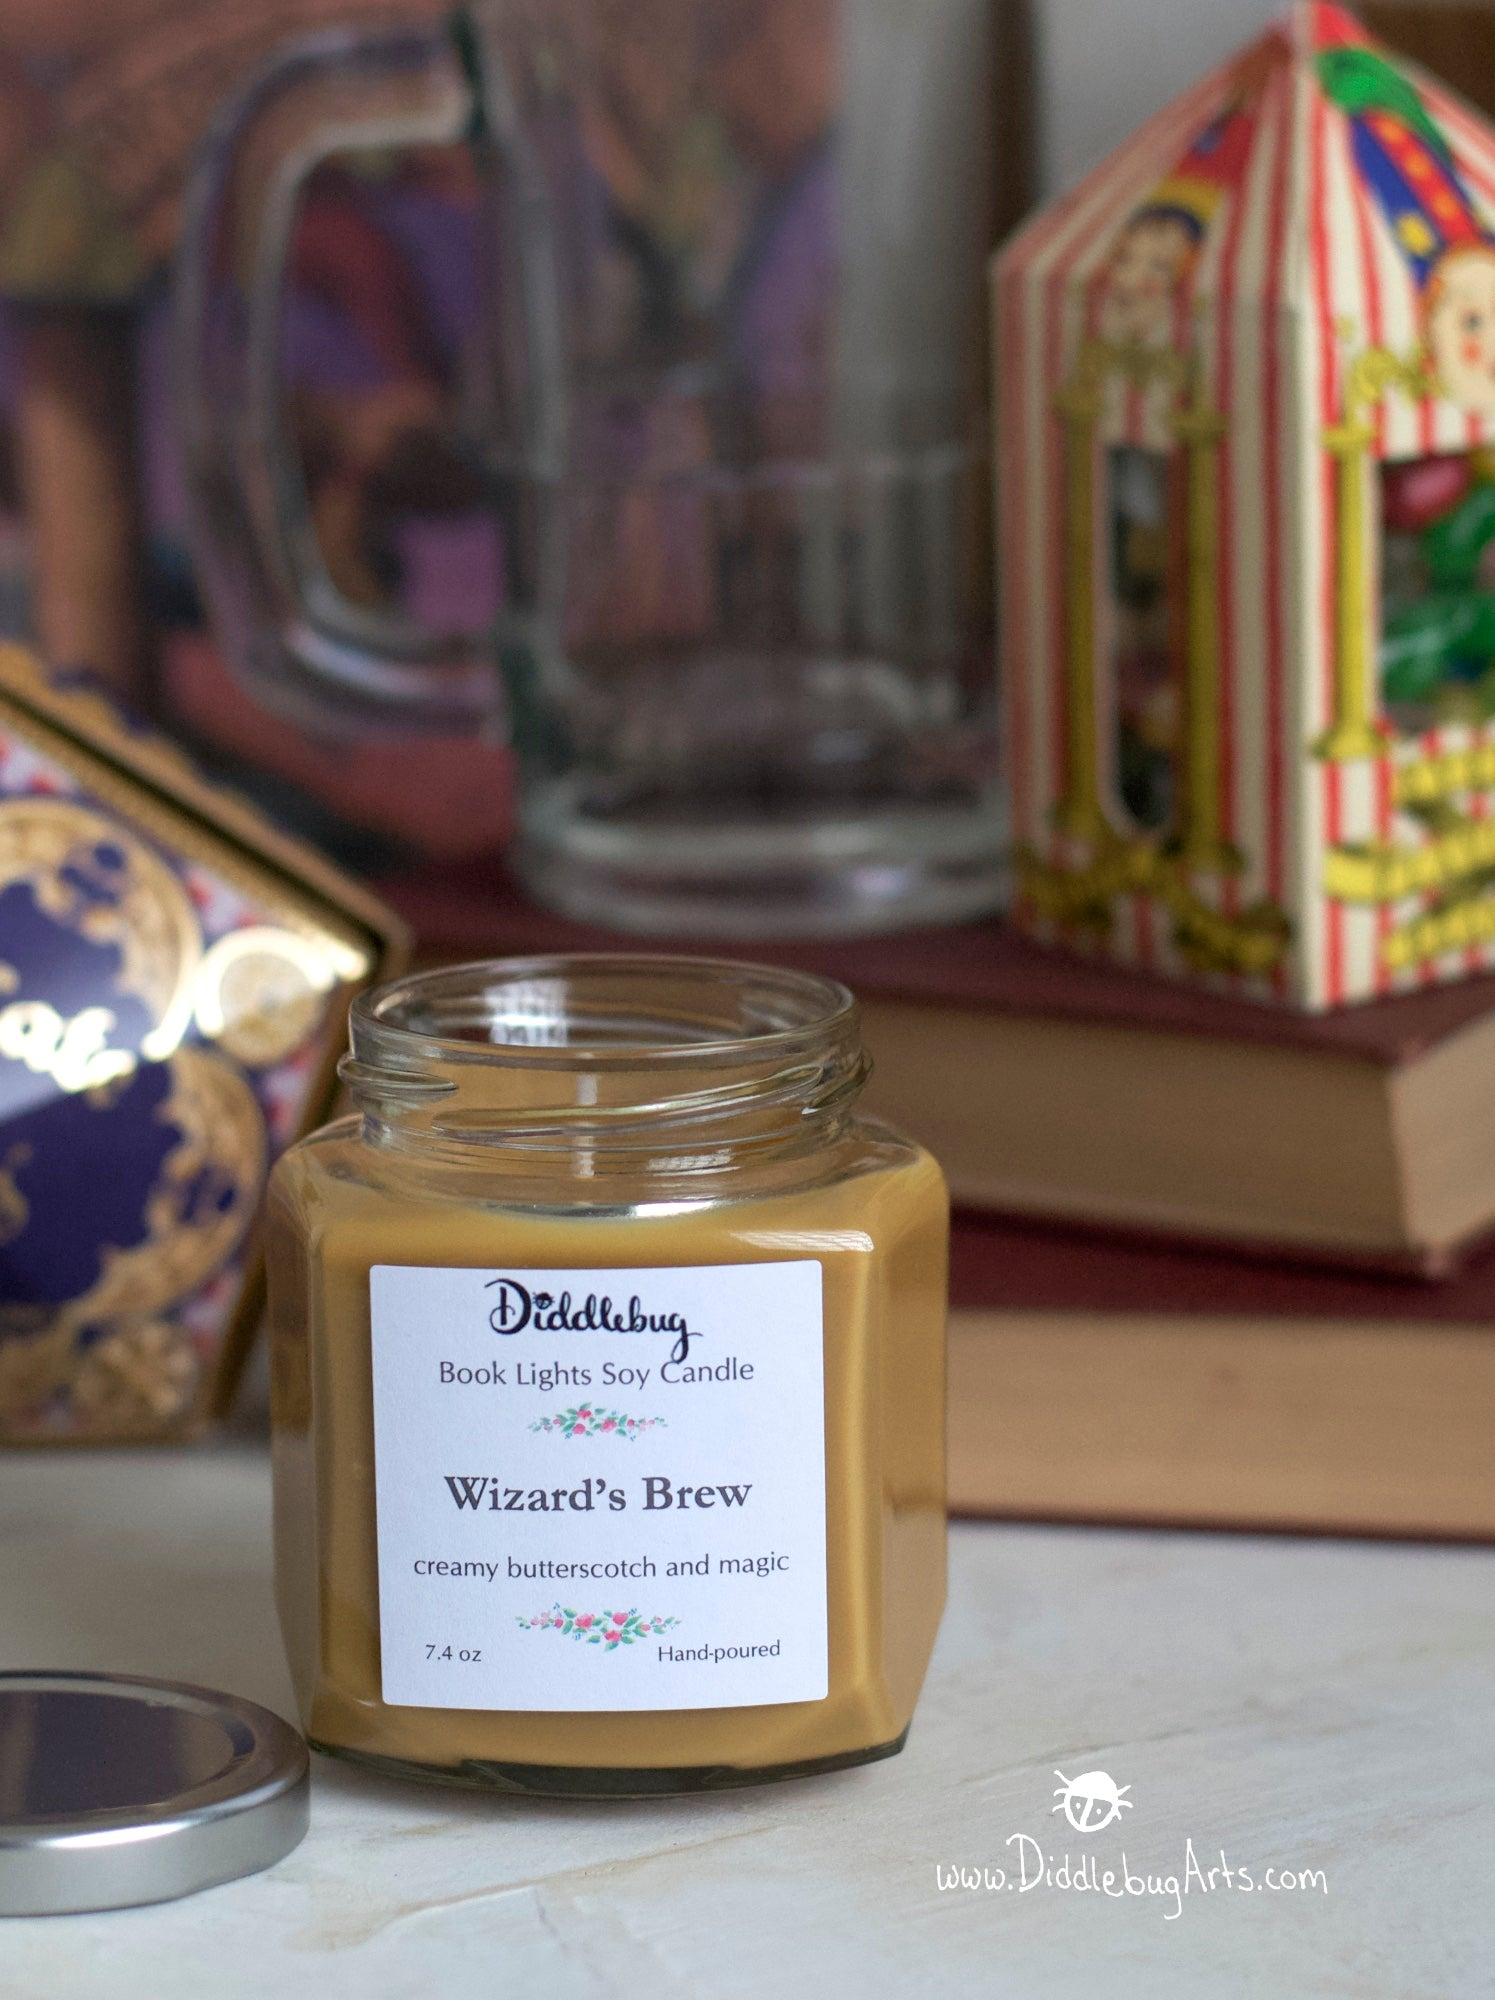 Wizard's Brew Hand Poured Soy Glass Jar Candle